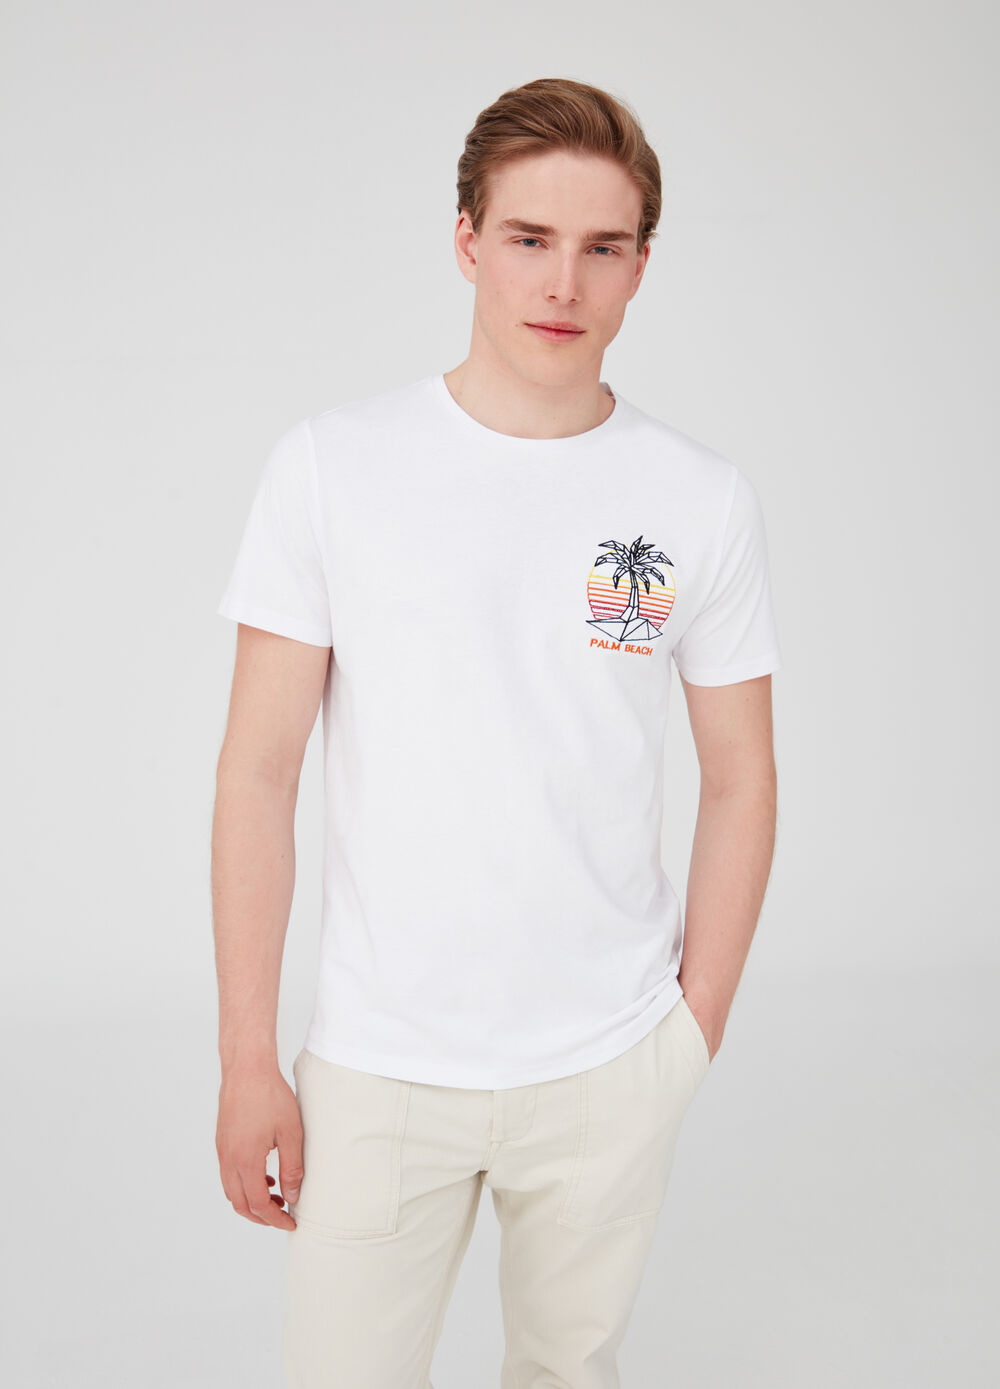 100% cotton T-shirt with palm embroidery